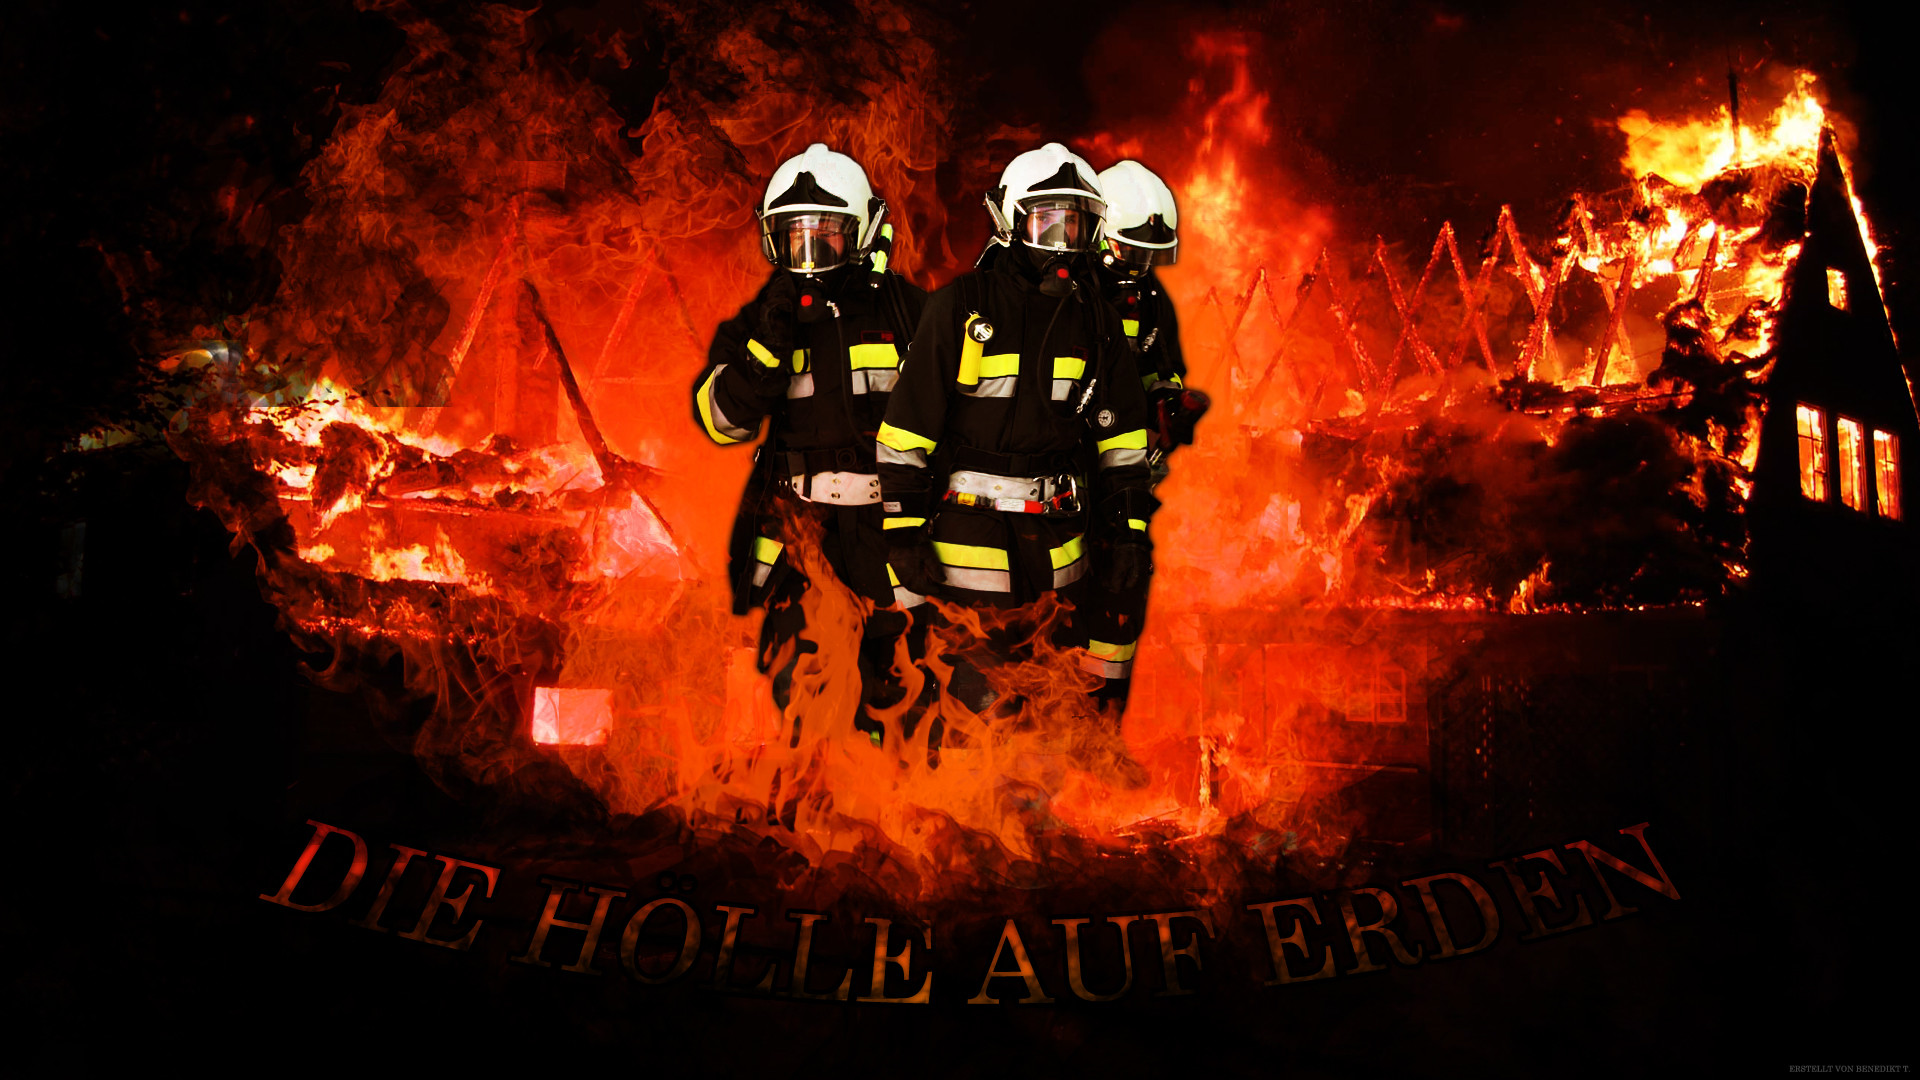 Wallpaper Source Firefighter Live Labzada For Computer